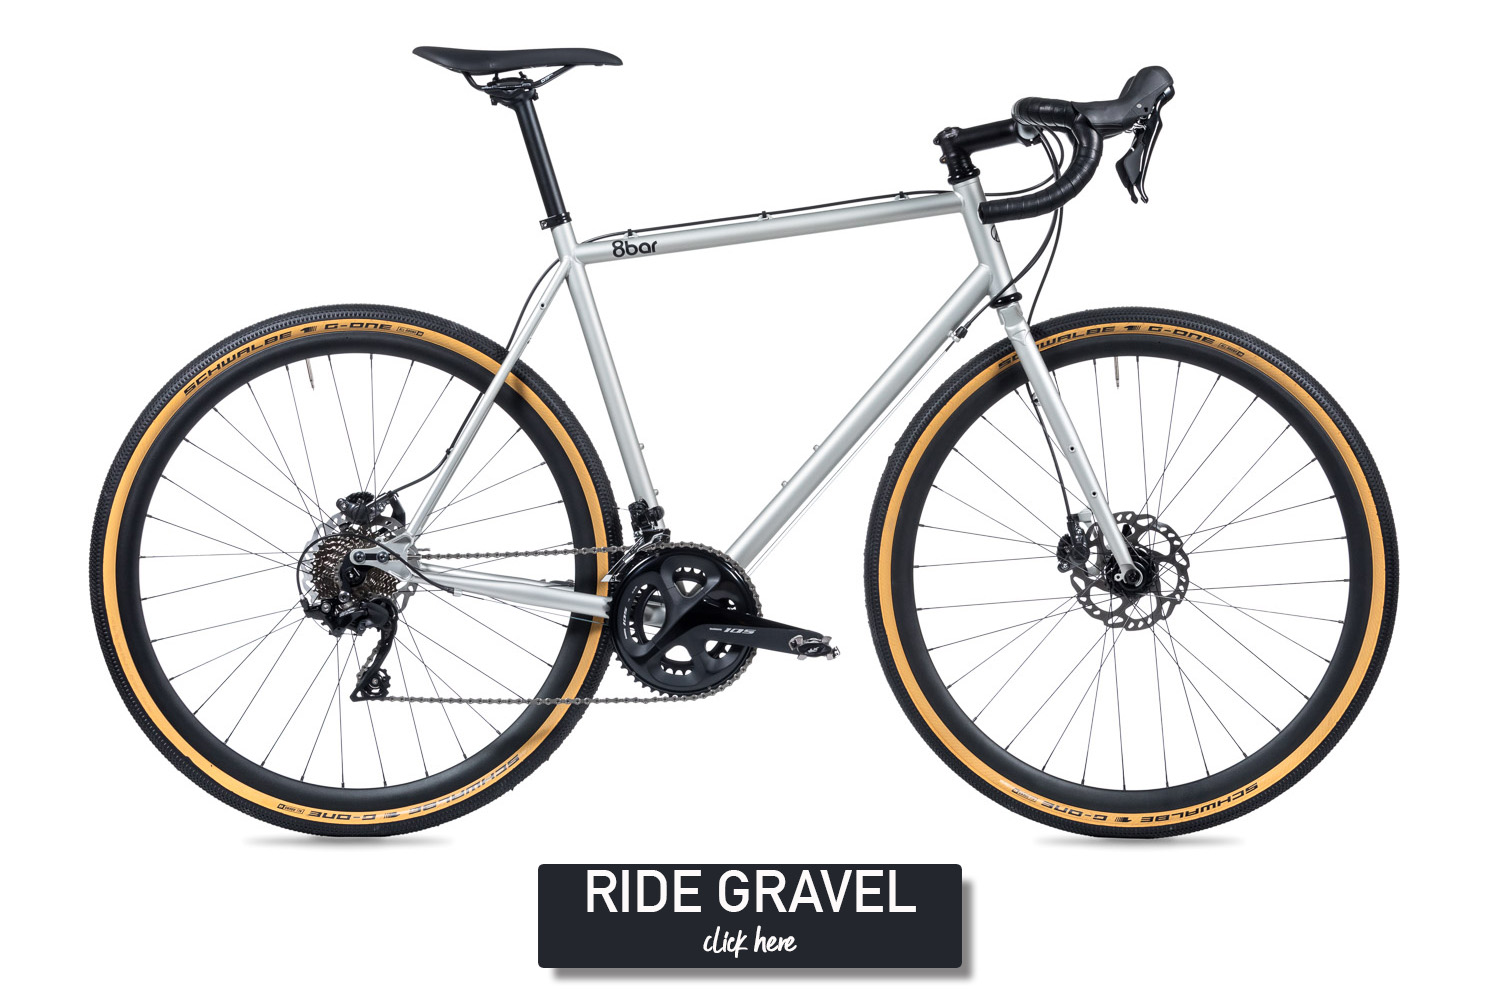 8bar complete bike mitte steel raw cx pro cta - 8bar MITTE STEEL IS HERE // CLASSIC MEETS MODERN